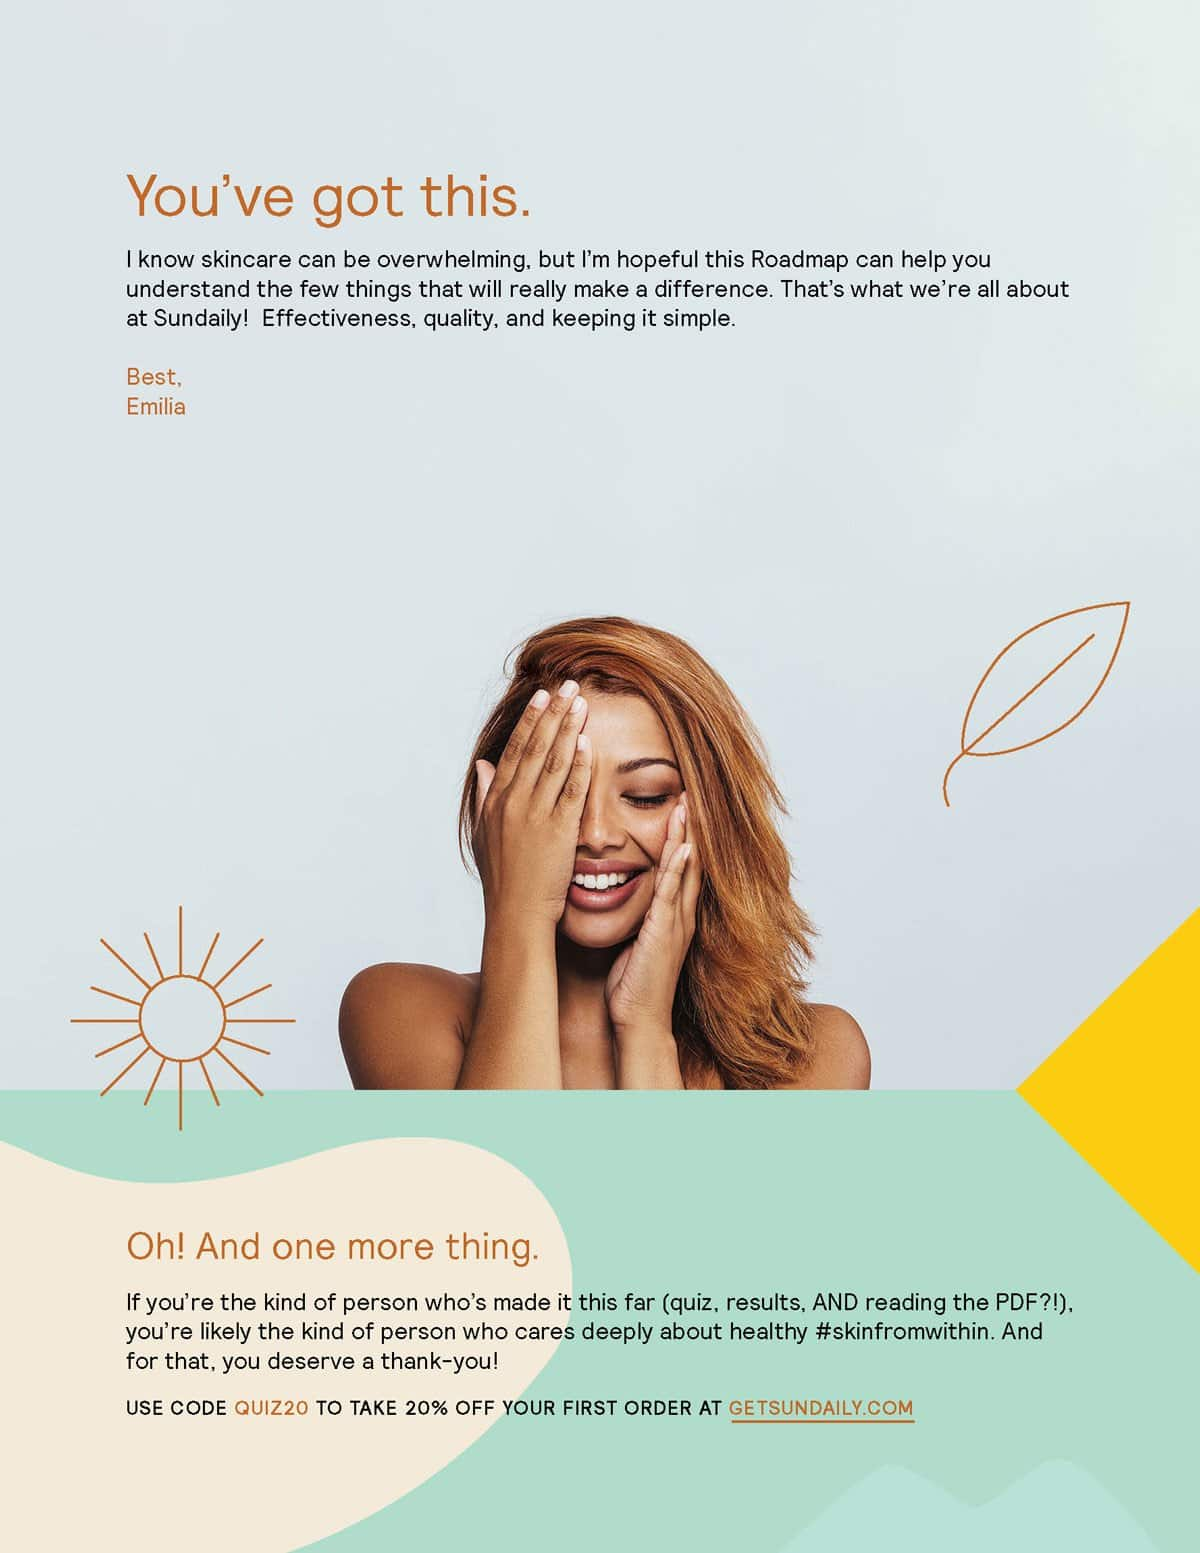 Downloadable content for skincare company, Sundaily